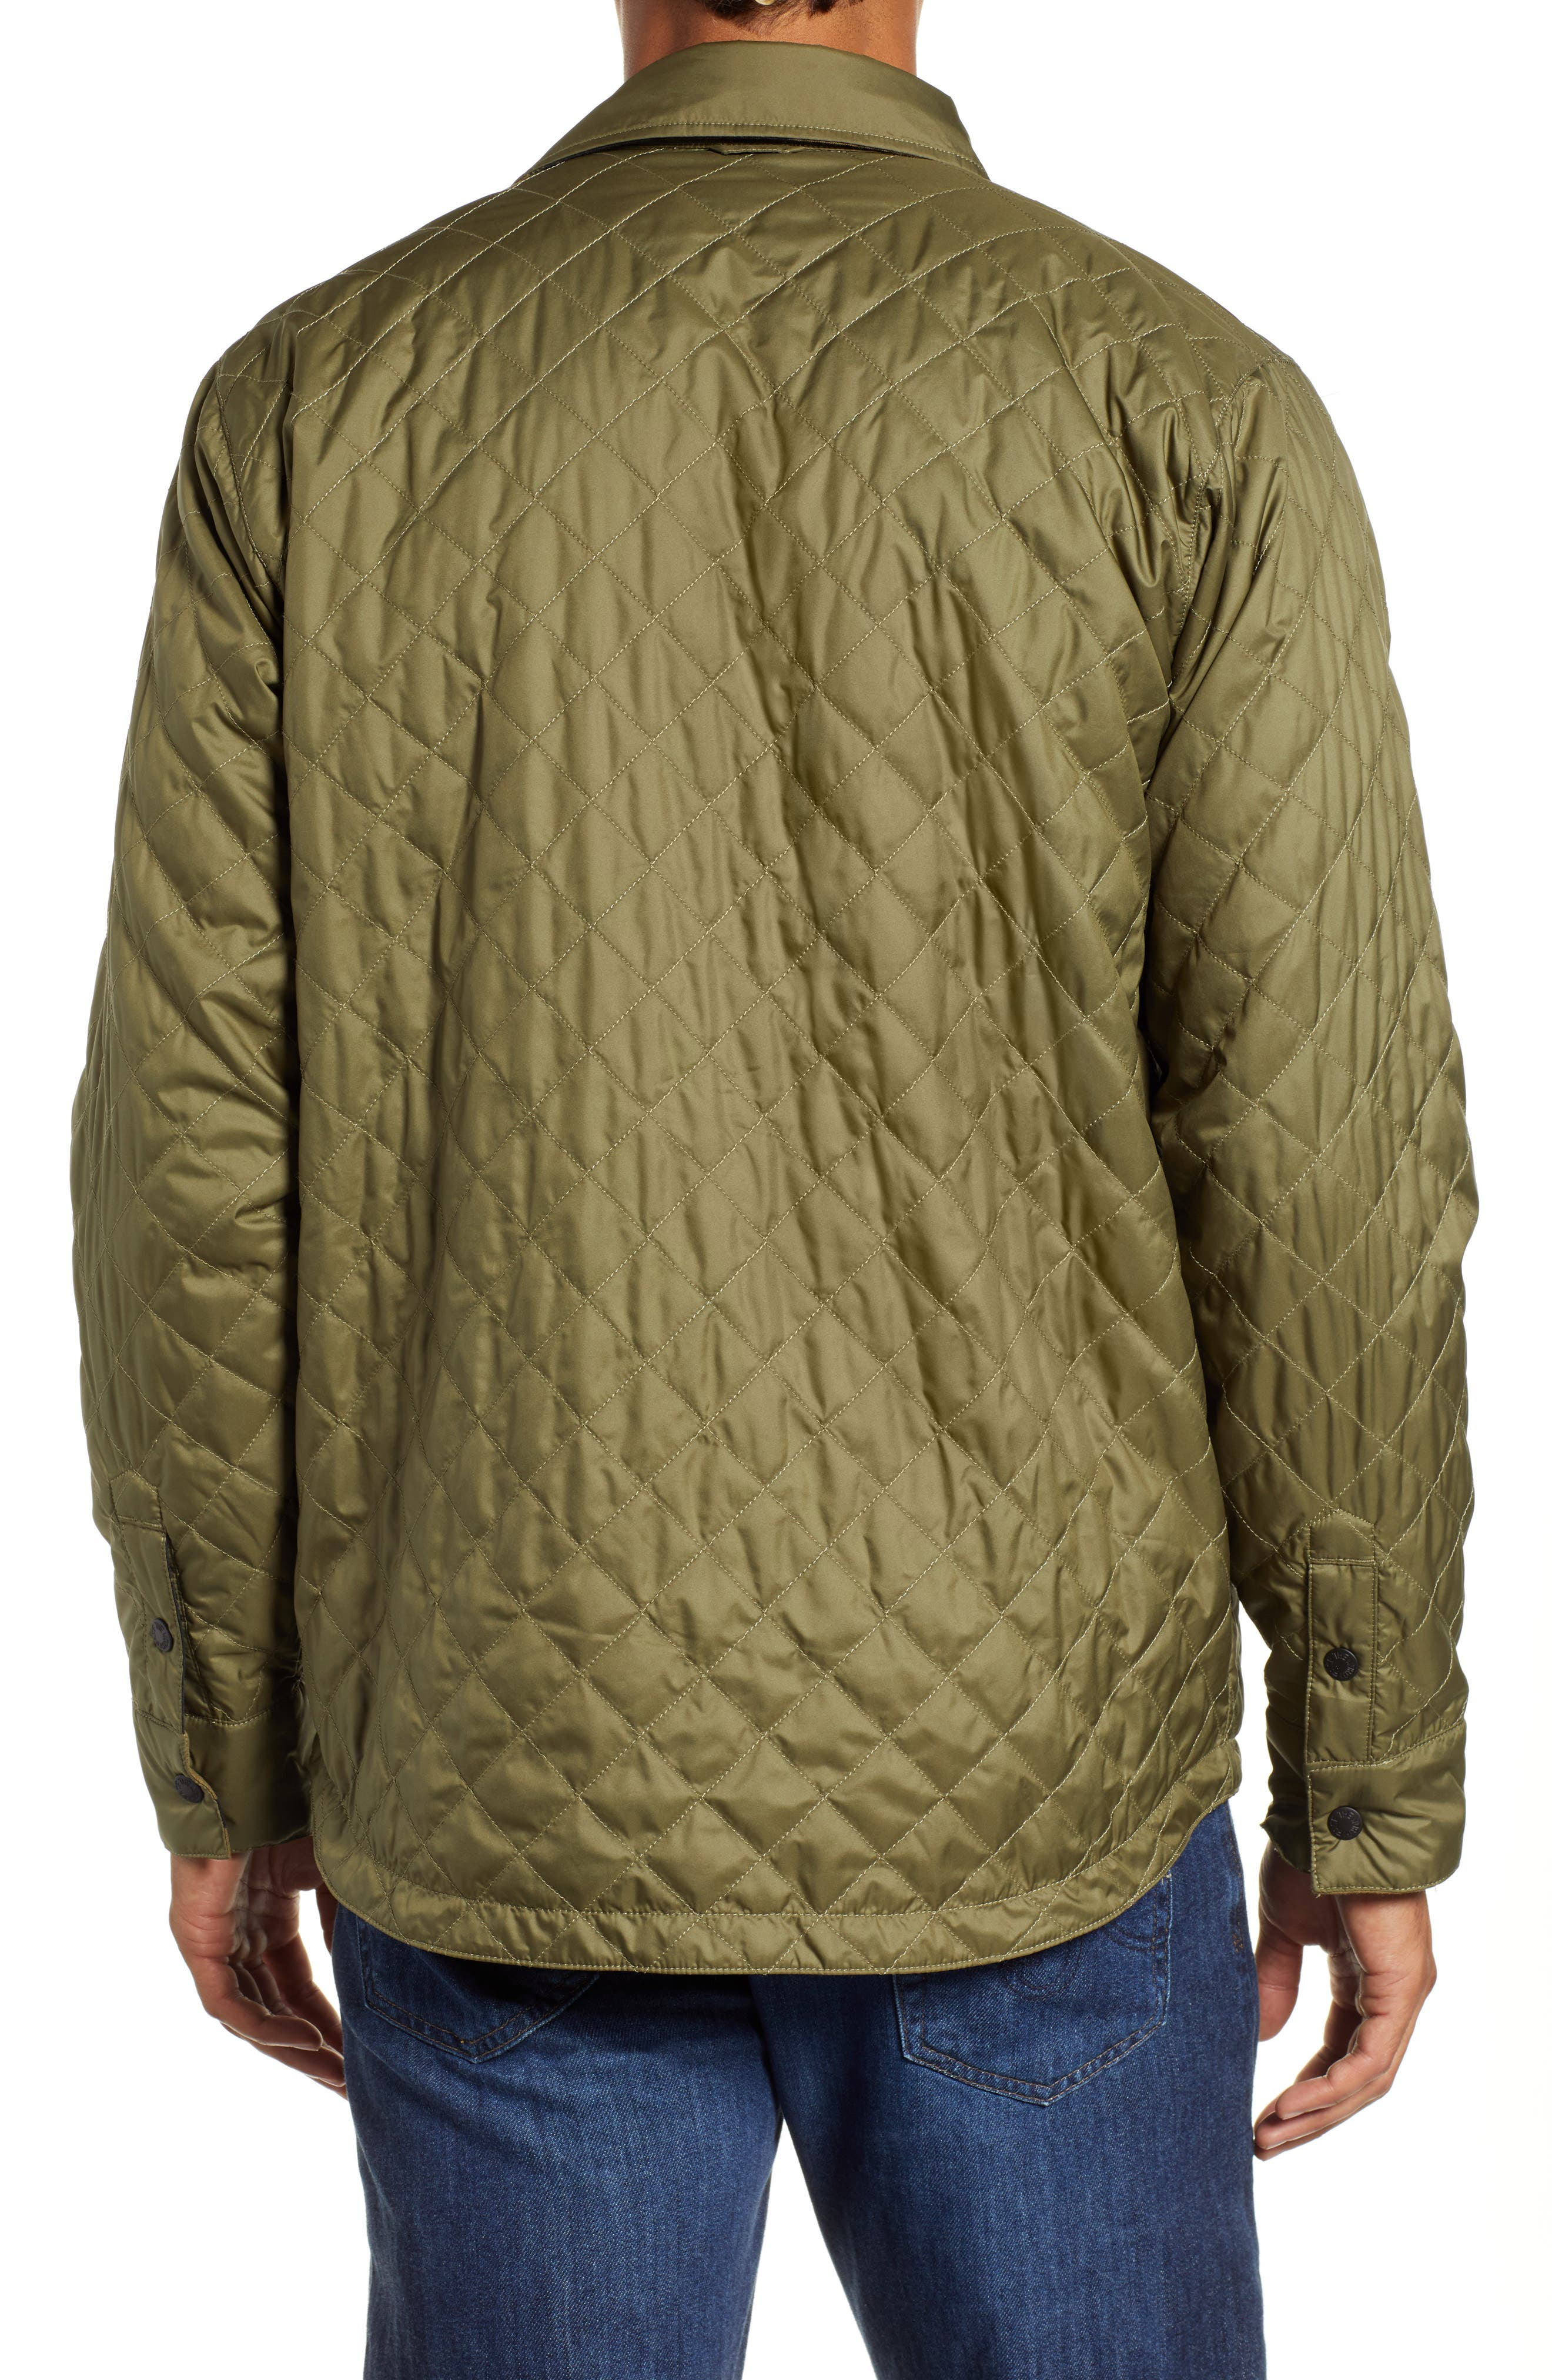 Fort Point Insulated Shirt Jacket,                             Alternate thumbnail 3, color,                             BURNT OLIVE GREEN